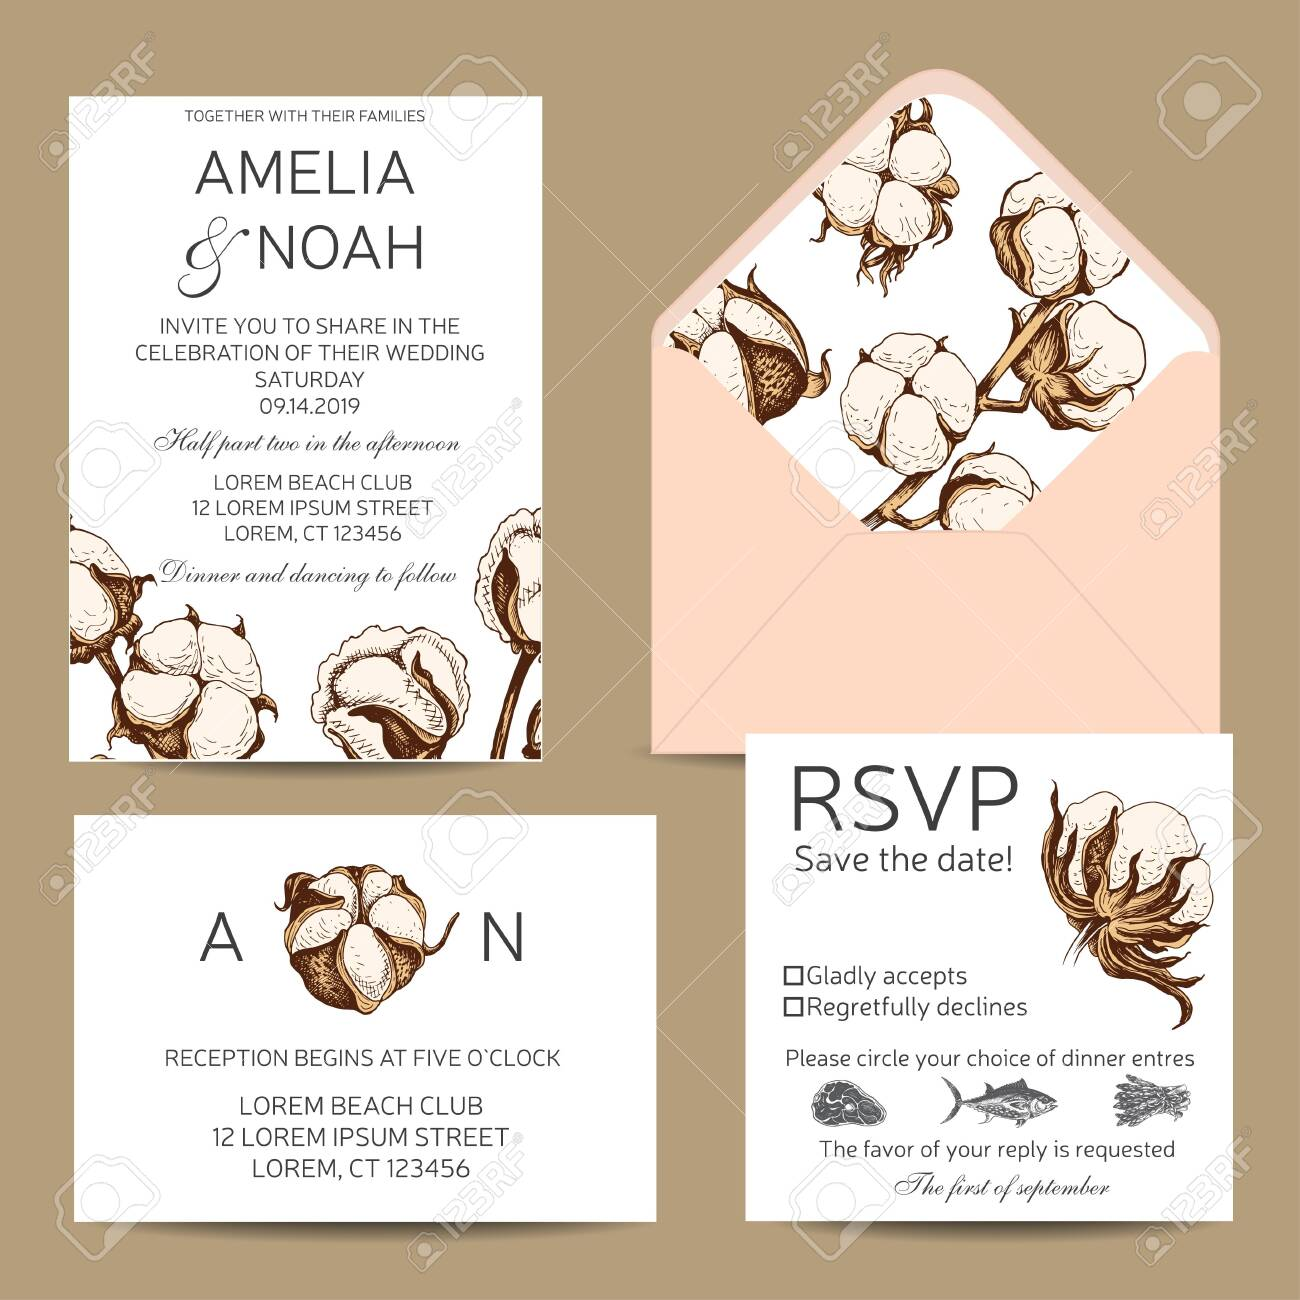 Template For Wedding Invitation Card Vector Illustration Cotton